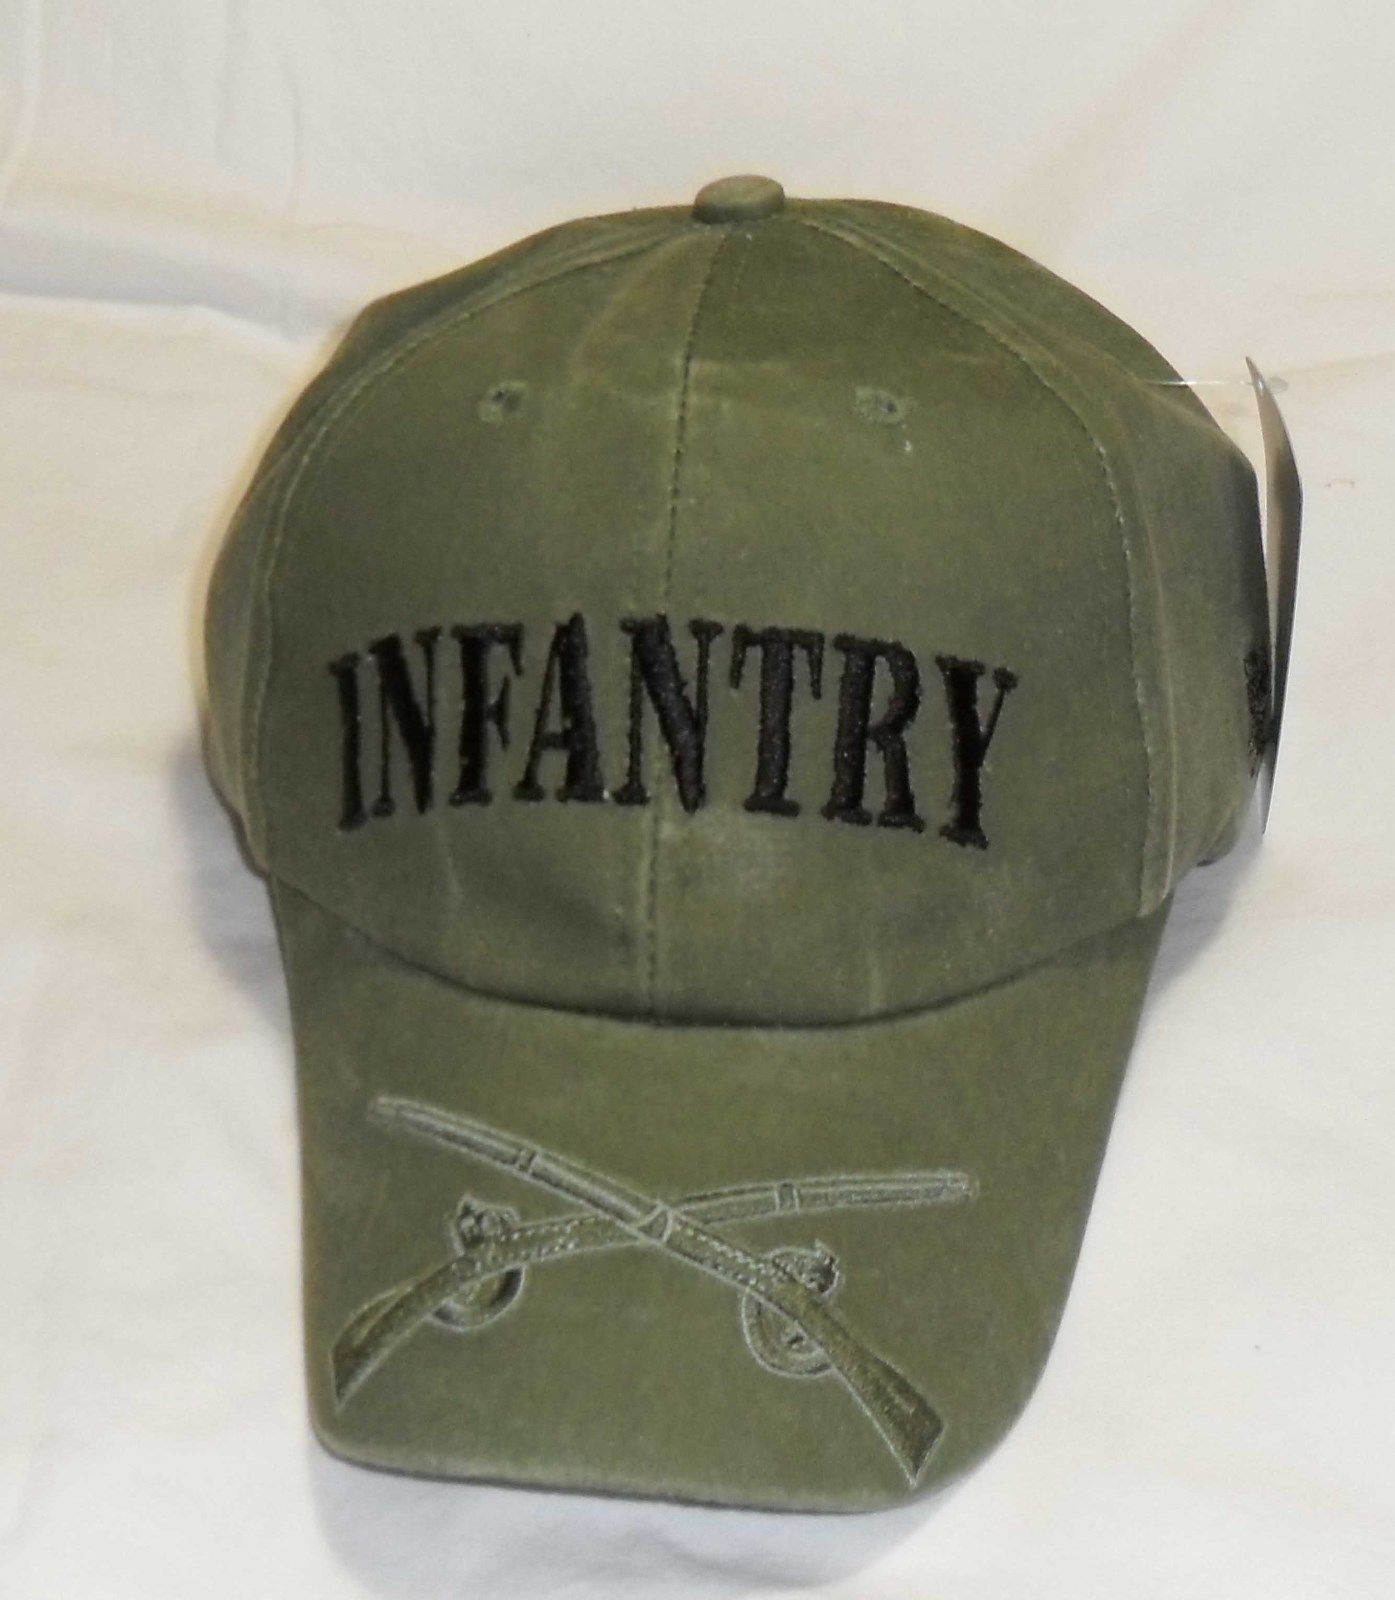 US ARMY INFANTRY - US Army Crossed Weapons BL-ODG Military Baseball Cap Hat